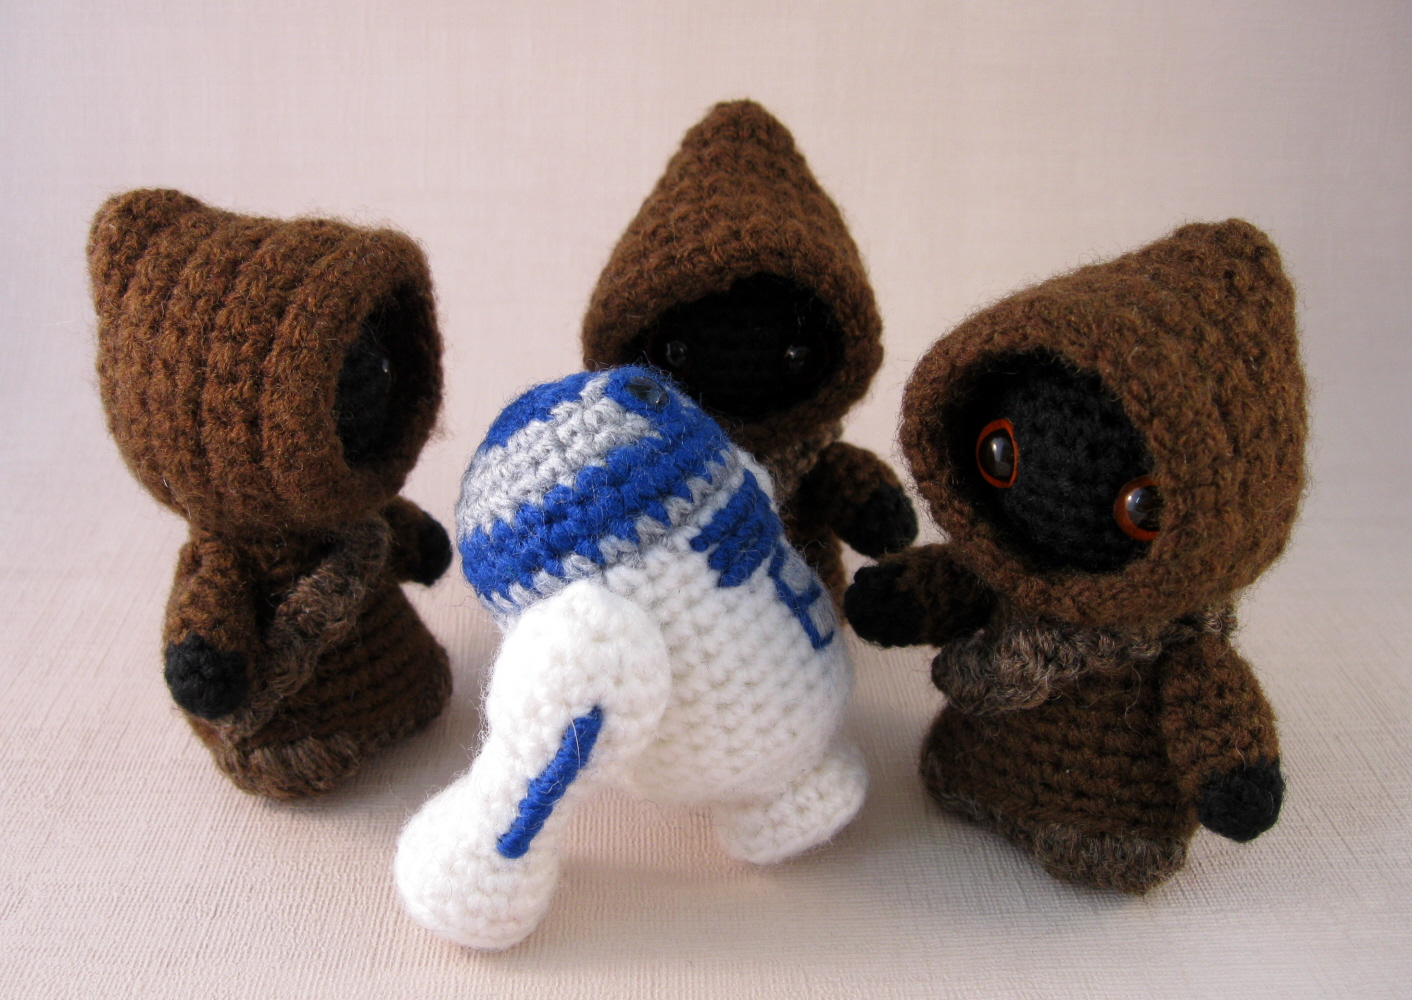 Free Crochet Patterns Amigurumi Star Wars : LucyRavenscar - Crochet Creatures: Utini! Its a new Jawa ...